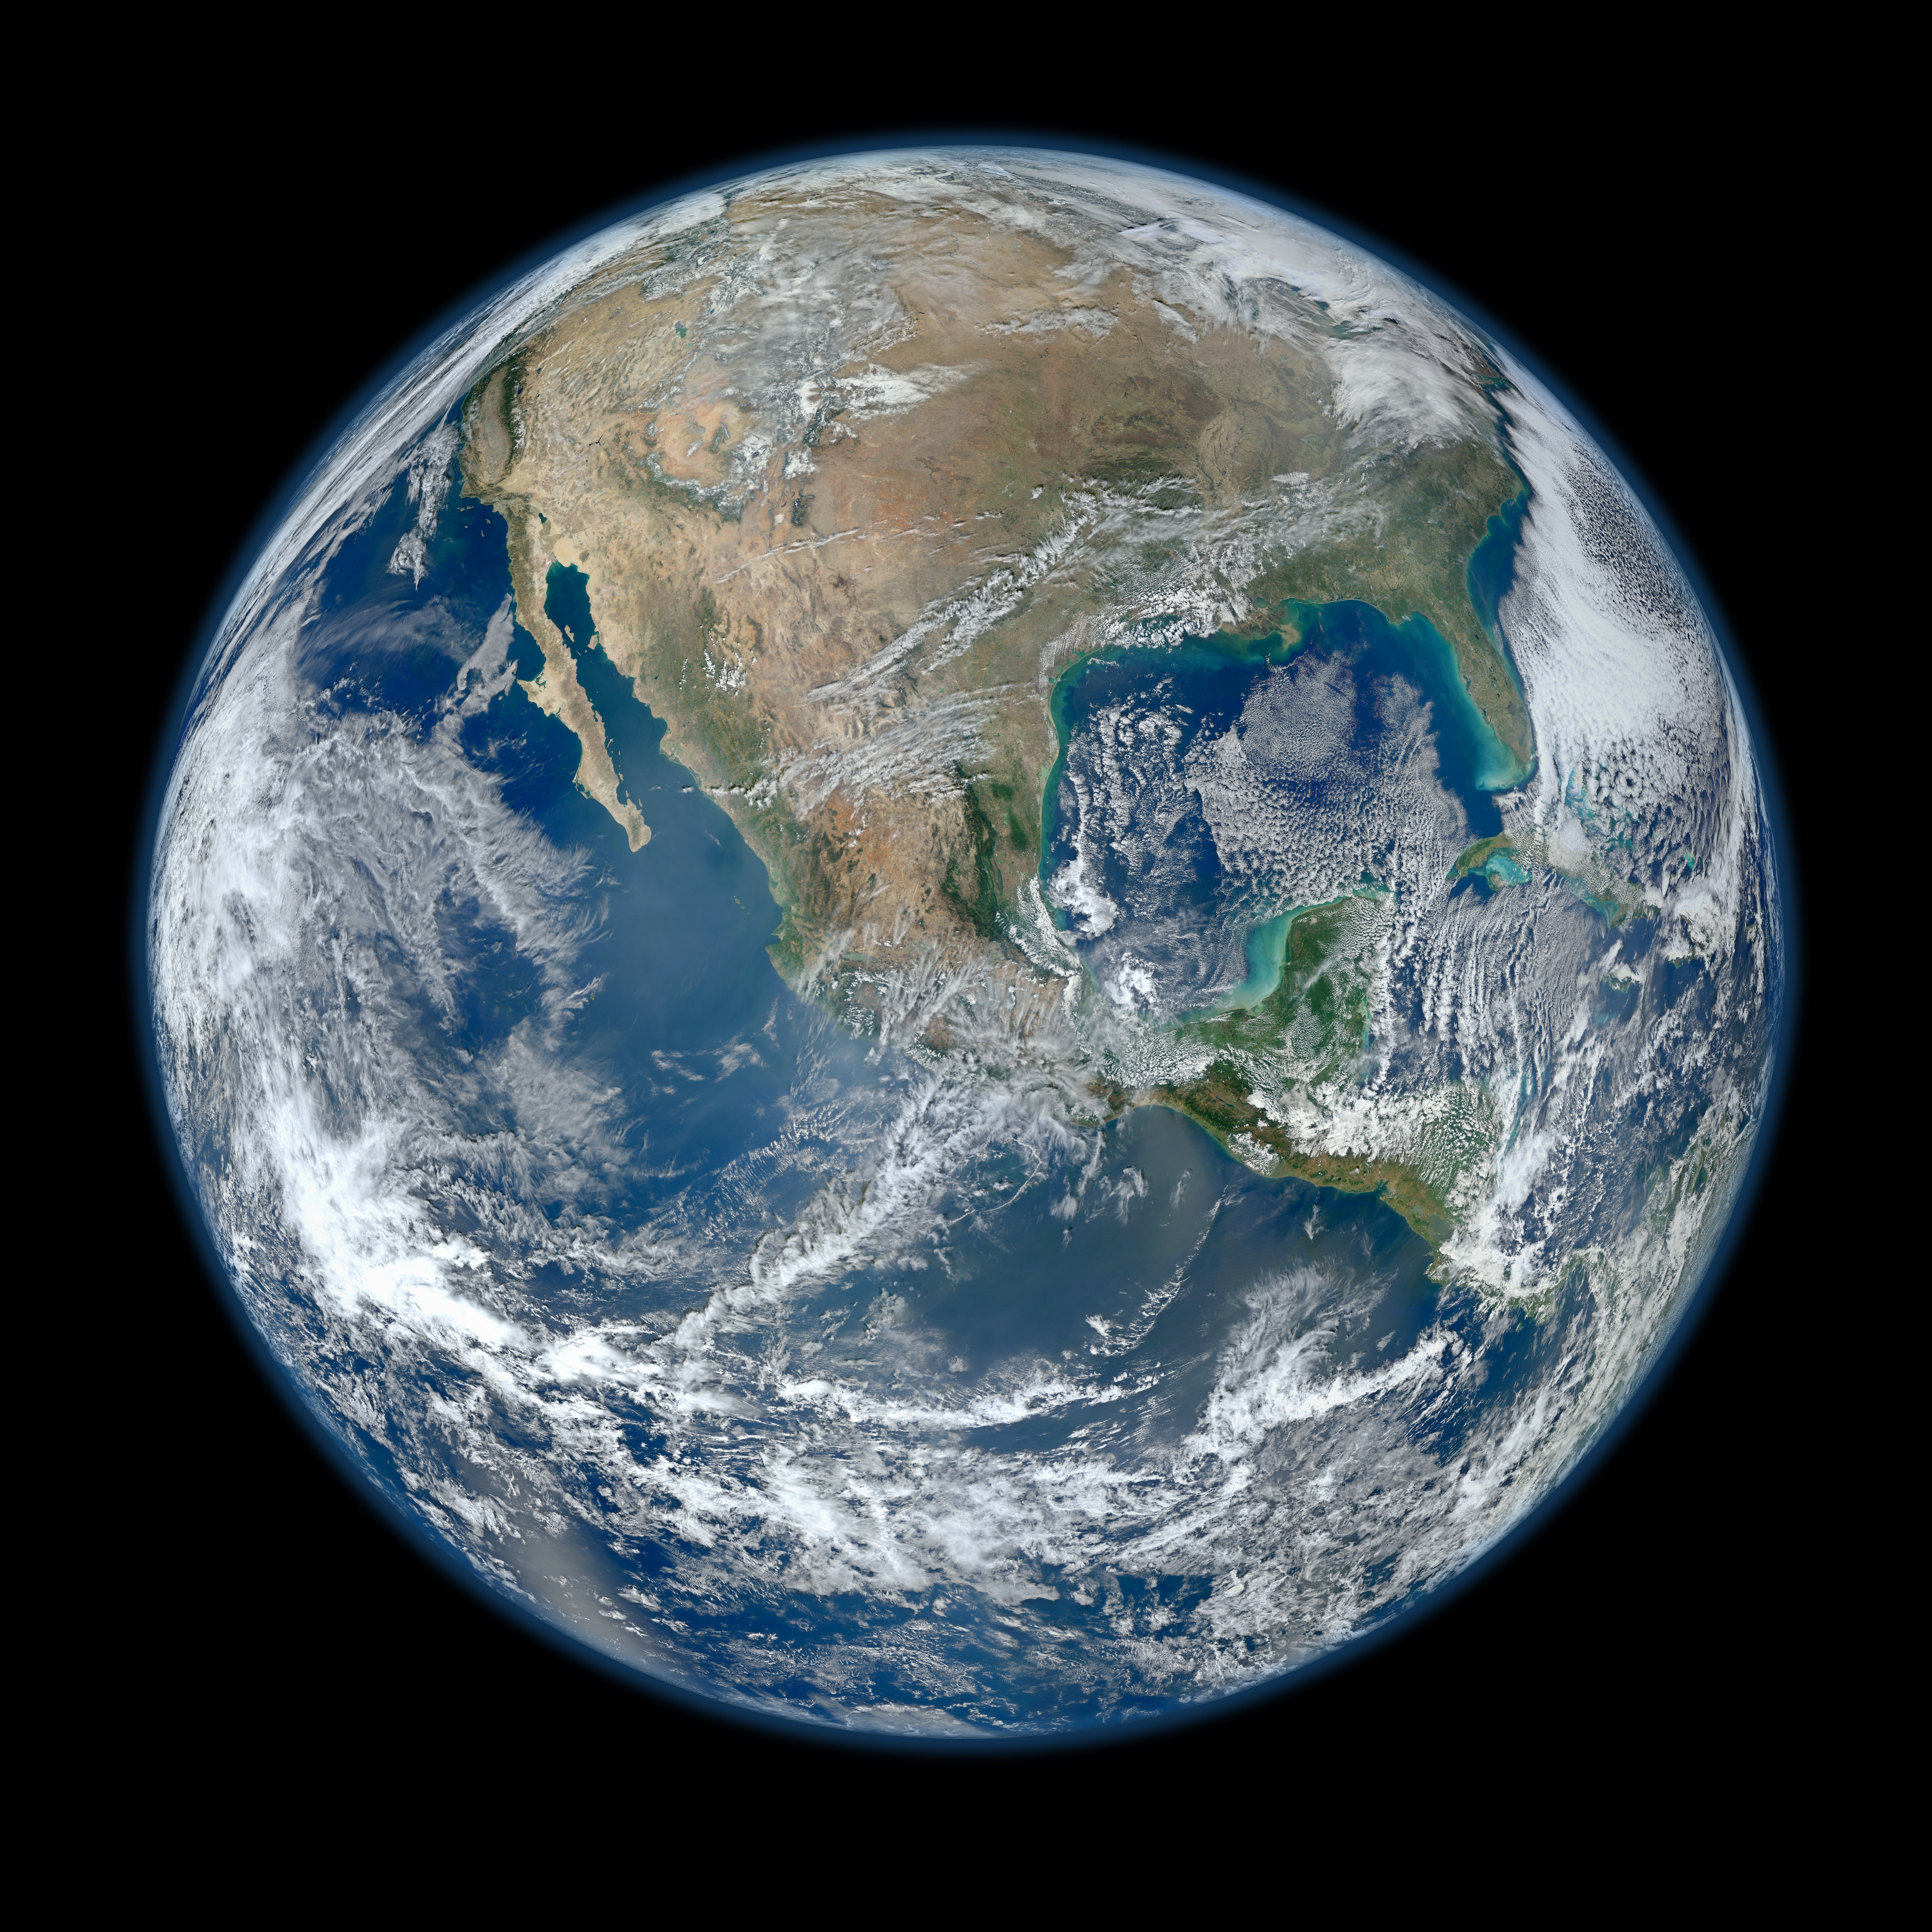 A 'Blue Marble' image of the Earth taken from the VIIRS instrument aboard NASA's most recently launched Earth-observing satellite - Suomi NPP. This composite image uses a number of swaths of the Earth's surface taken on January 4, 2012. The NPP satellite was renamed 'Suomi NPP' on January 24, 2012 to honor the late Verner E. Suomi of the University of Wisconsin. Image Credit: NASA/NOAA/GSFC/Suomi NPP/VIIRS/Norman Kuring